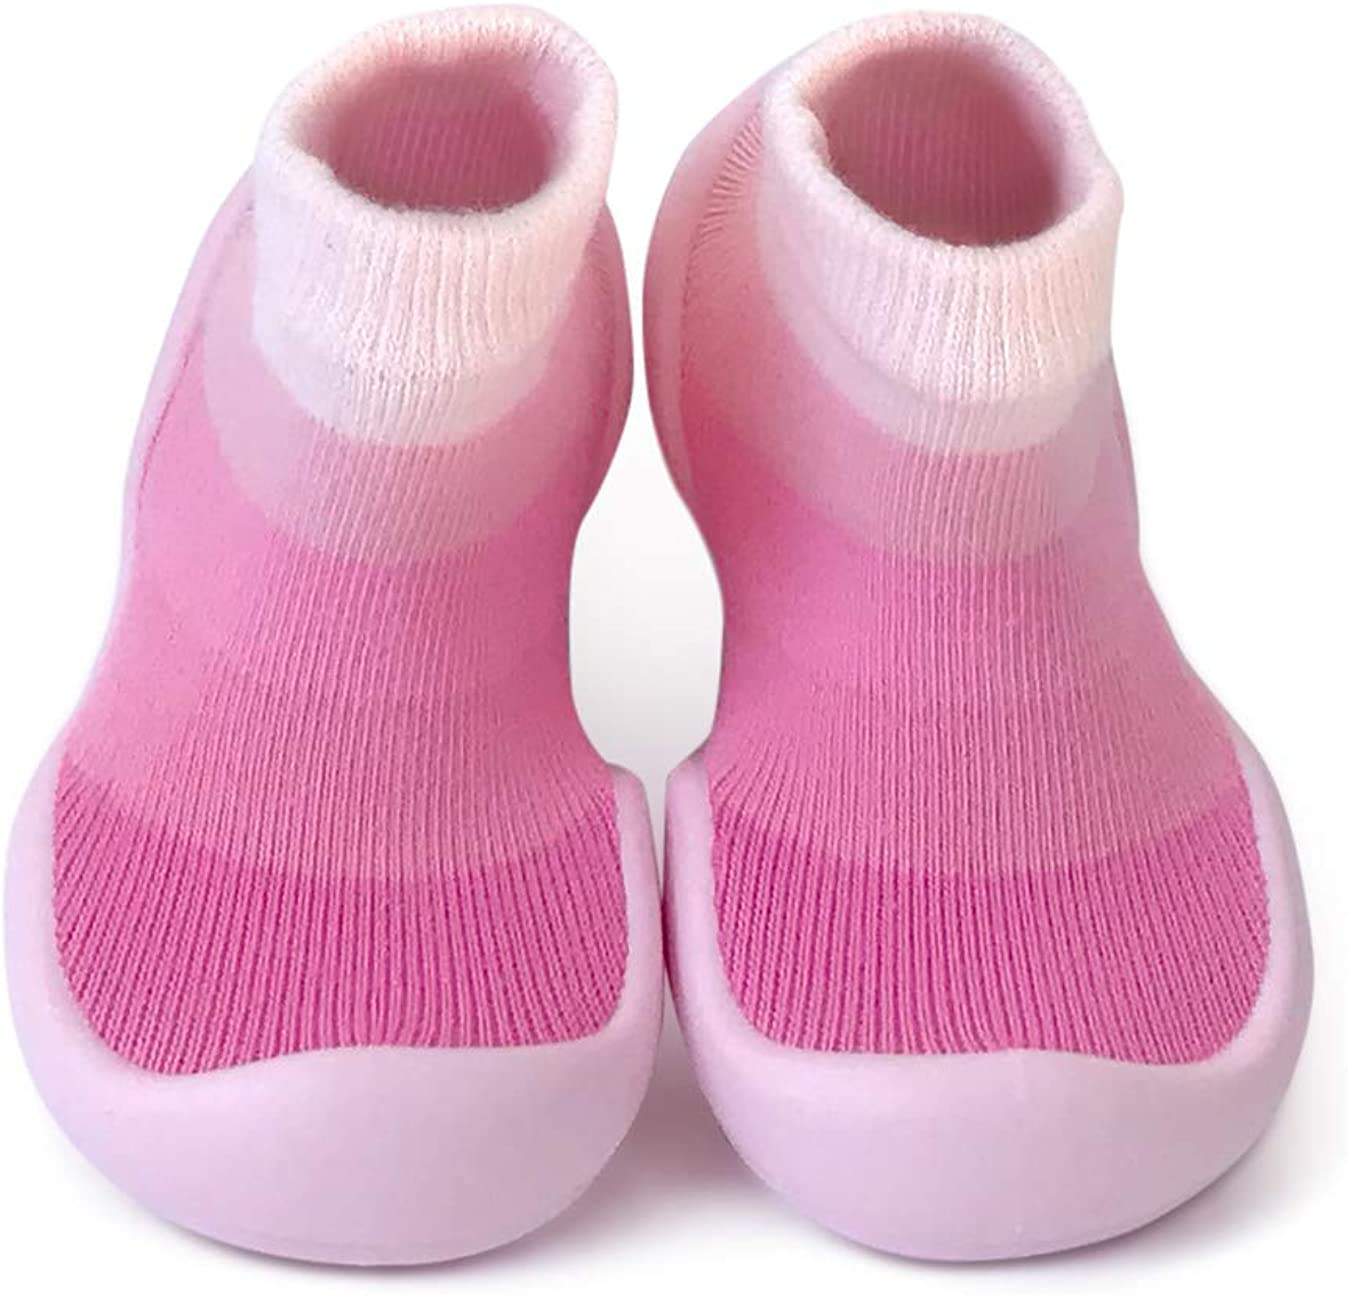 Step Ons Rubber Sole Sock Baby Shoes